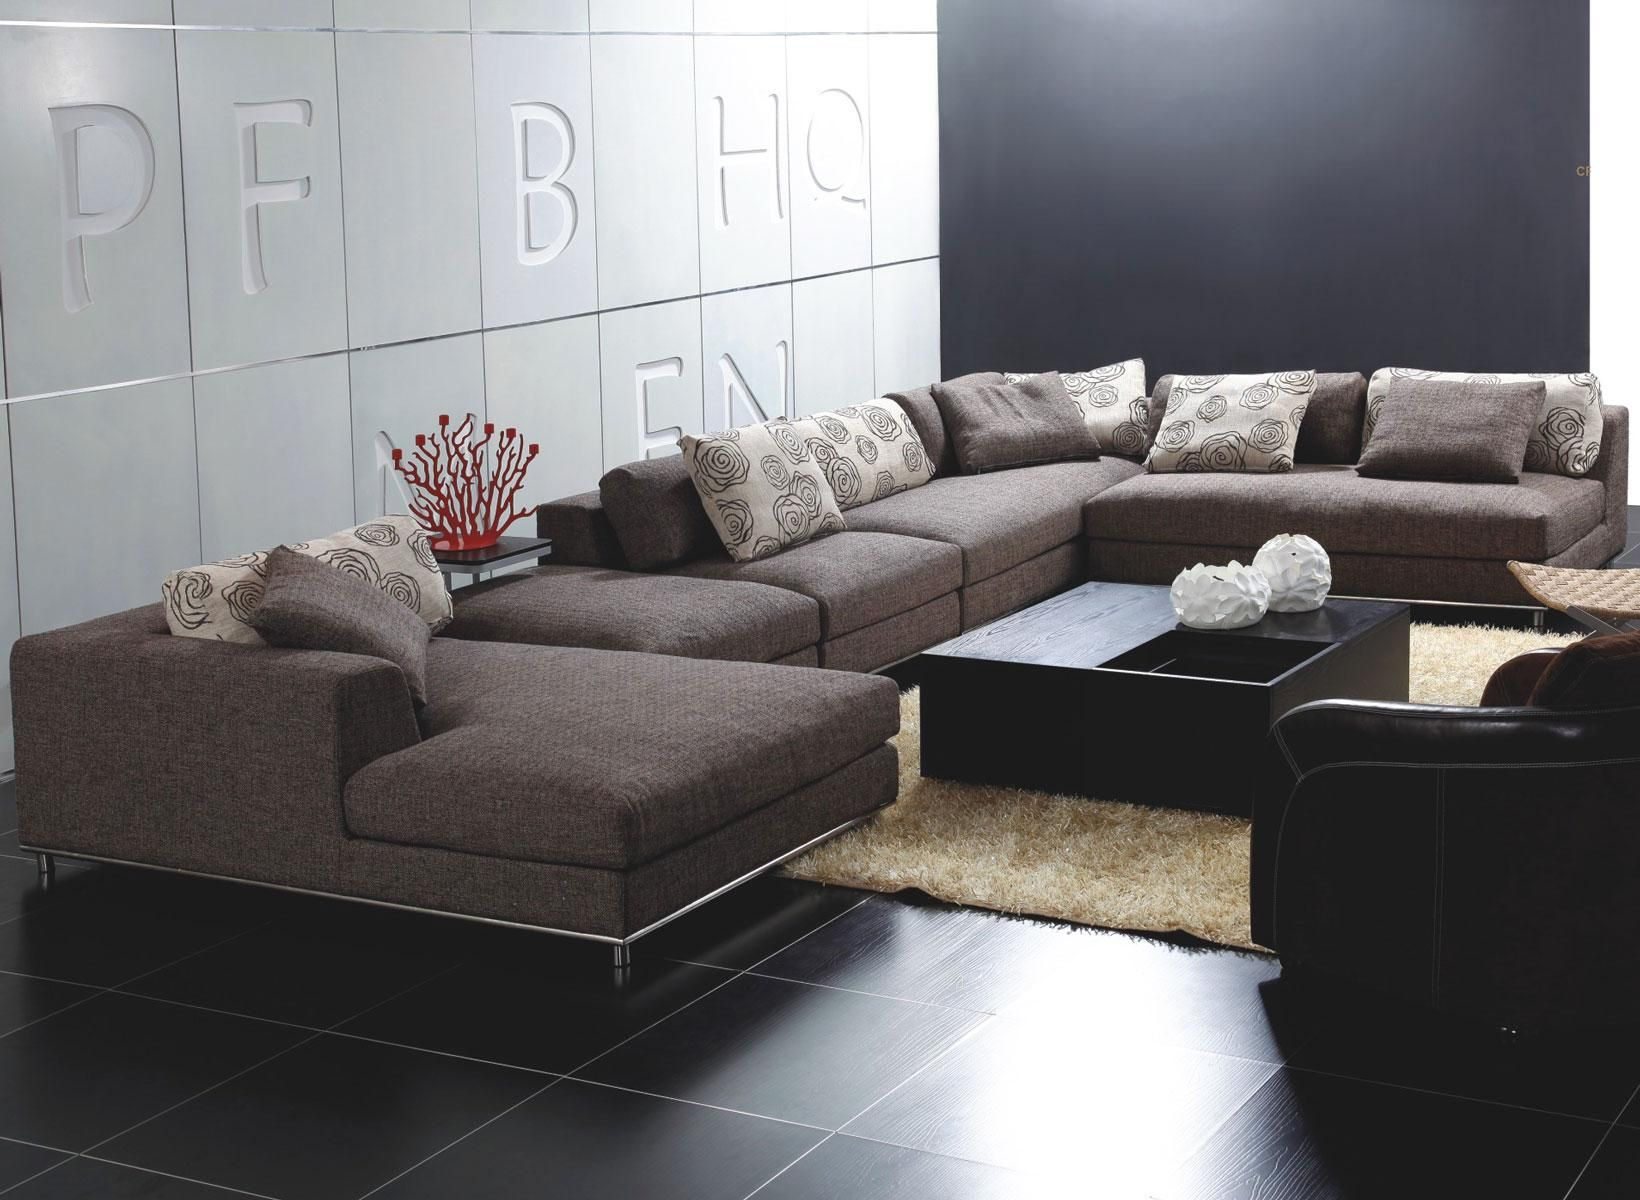 Depiction of Best Sectional Sofa for the Money That Will Stun You